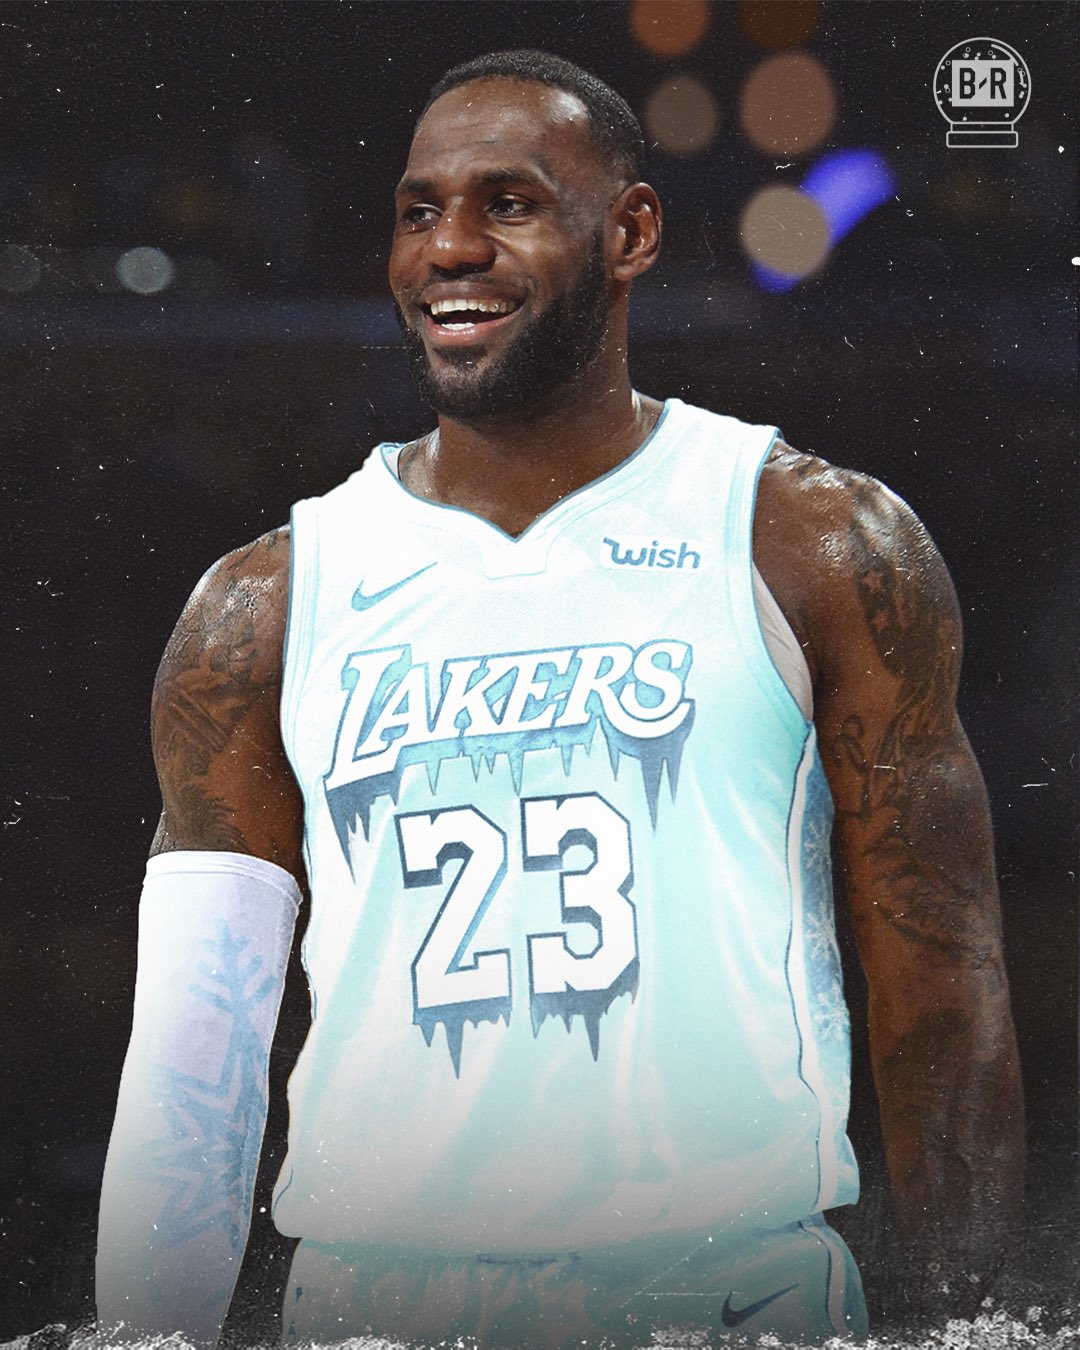 Lakers news: LeBron James wishes for return of Christmas Day uniforms